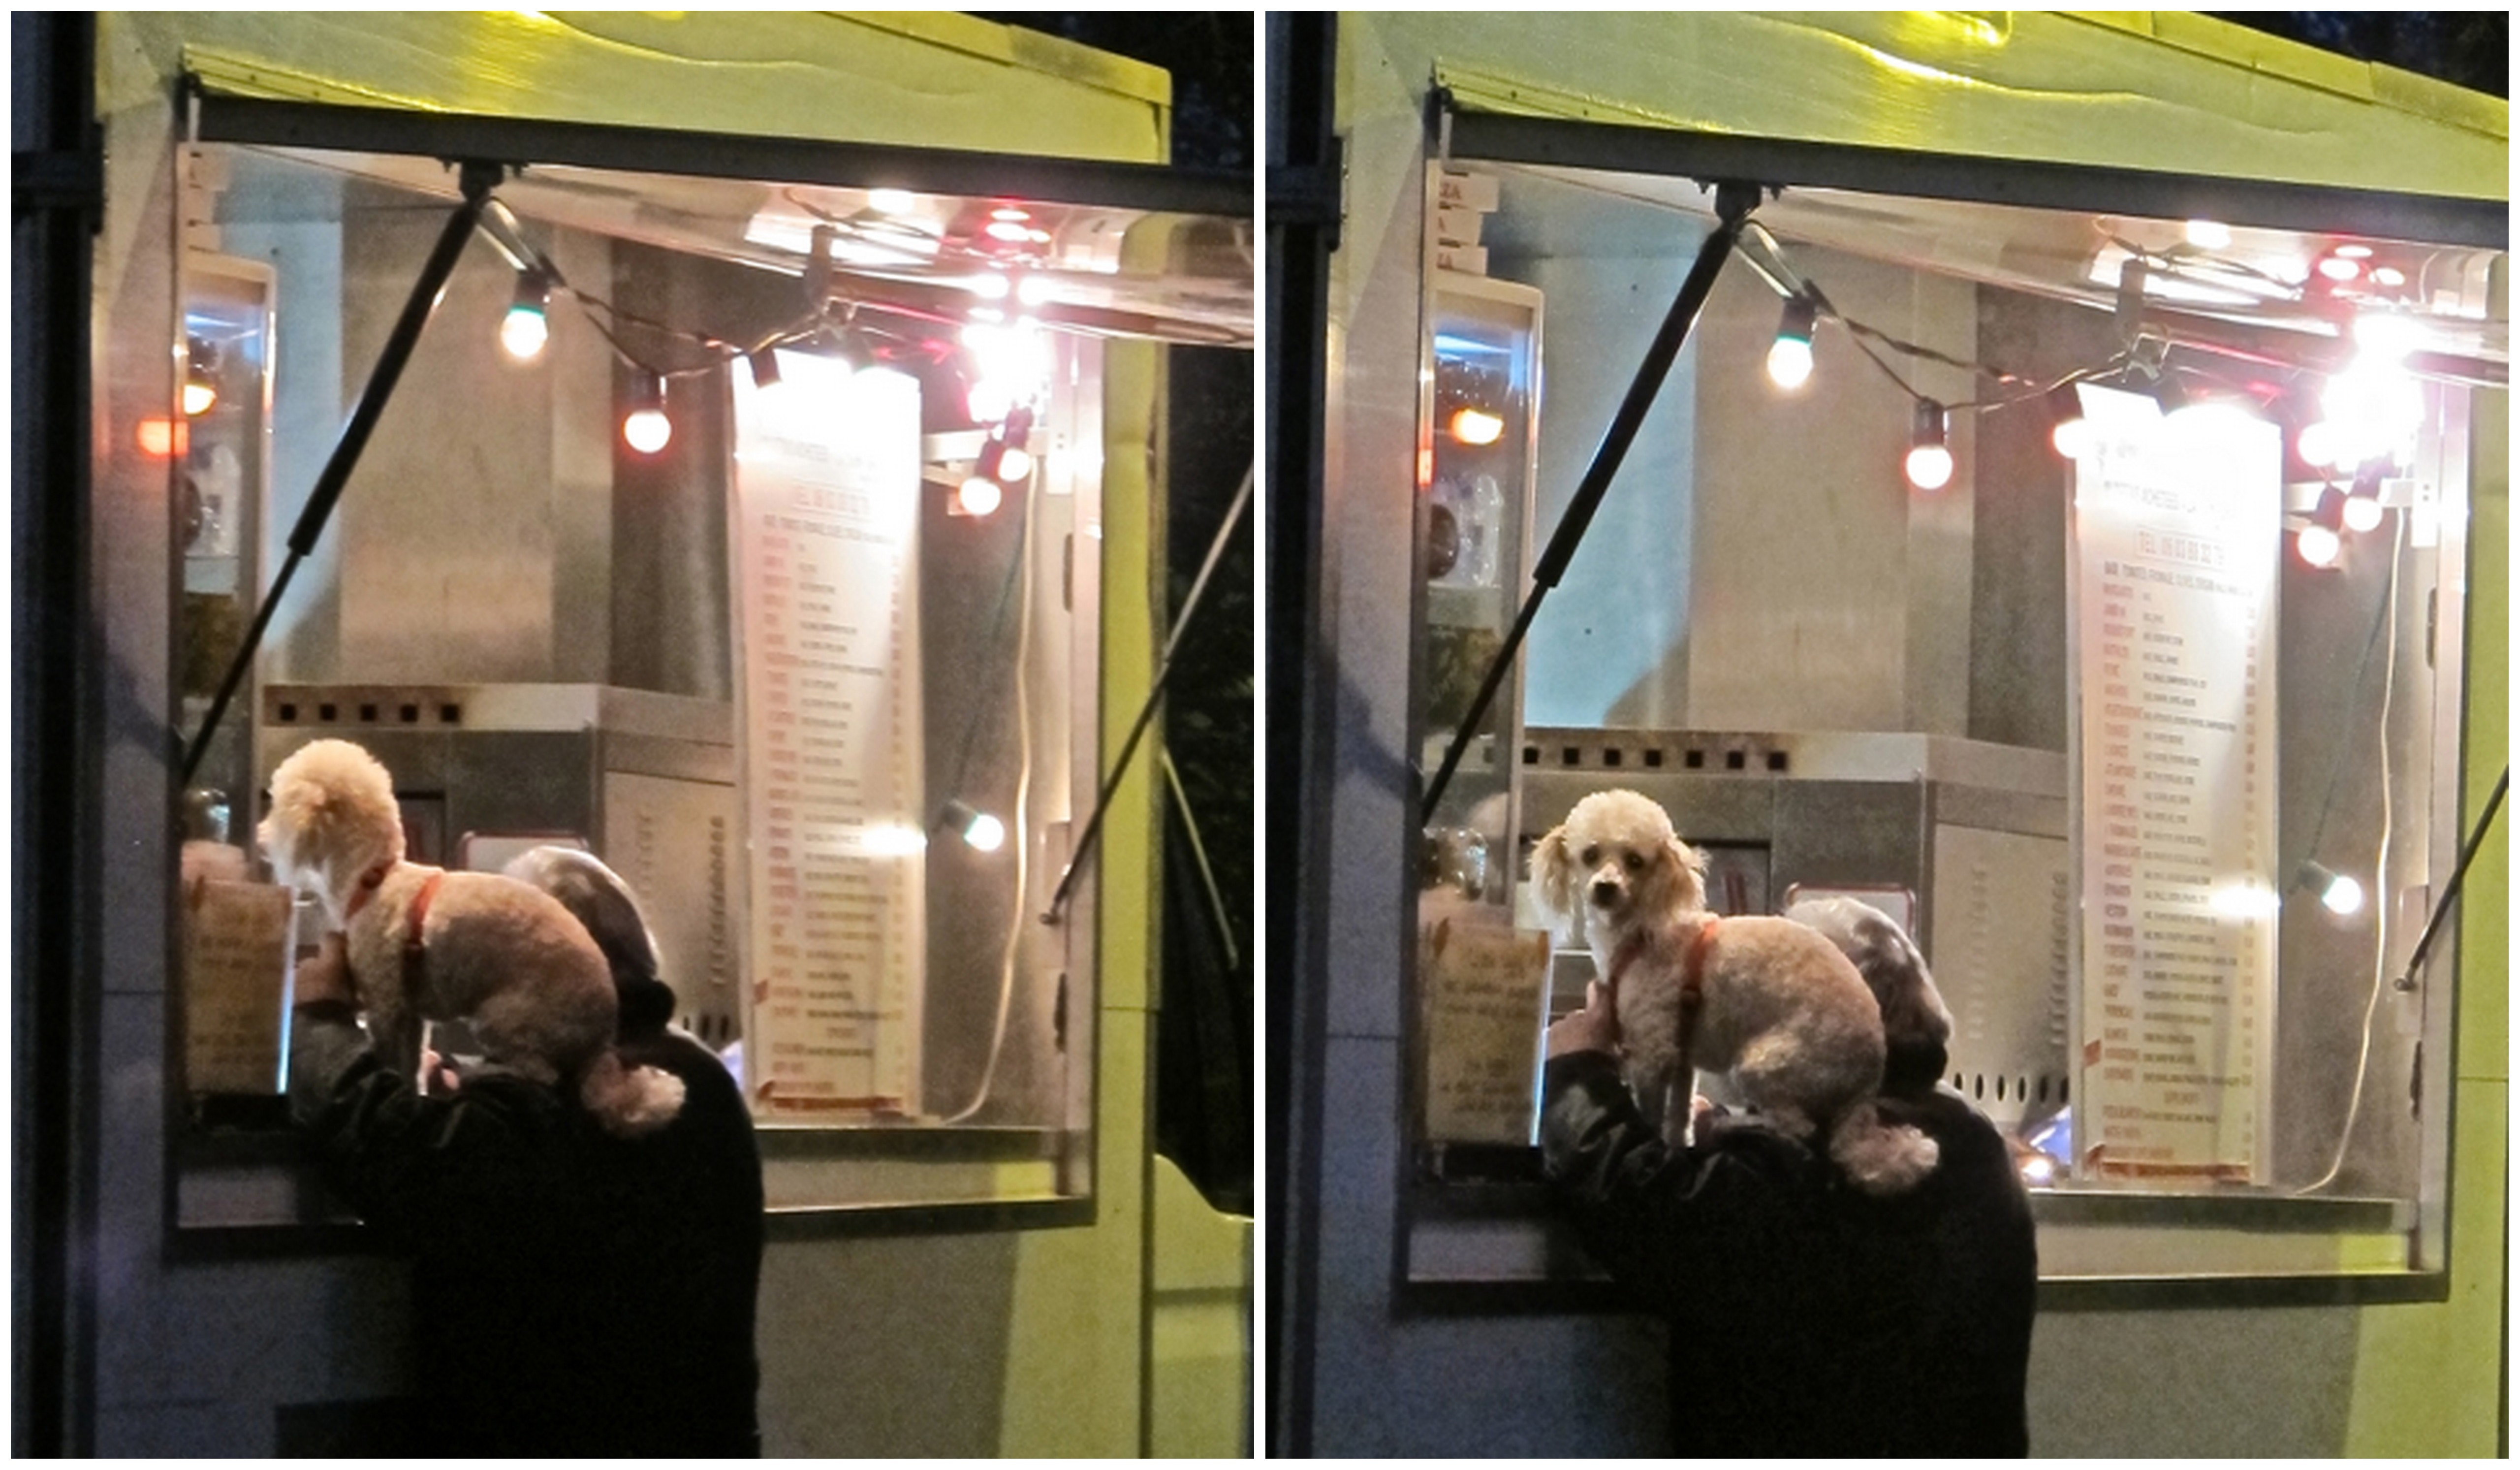 Sunday night and pooch is hangin' at the pizza van